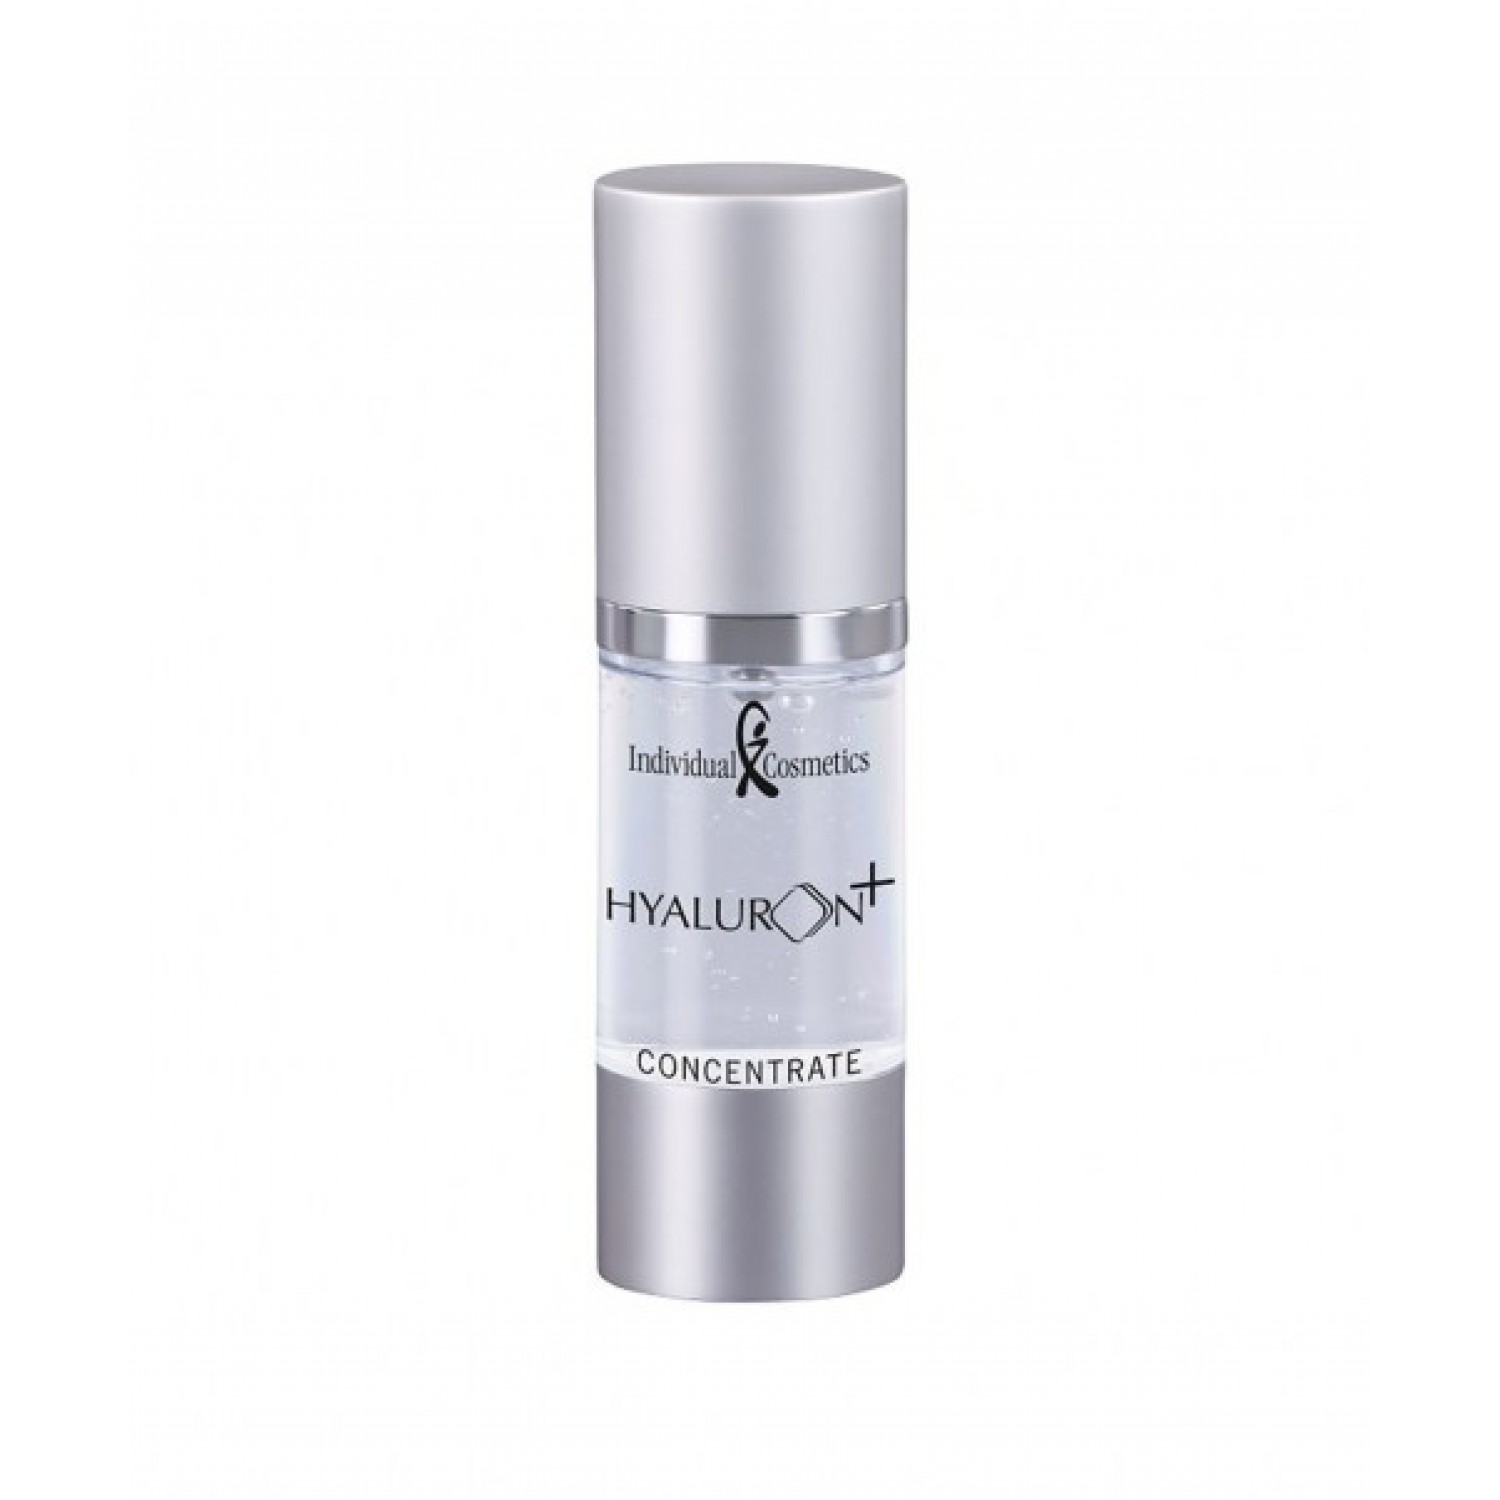 Individual Hyaluron Plus Concentrate